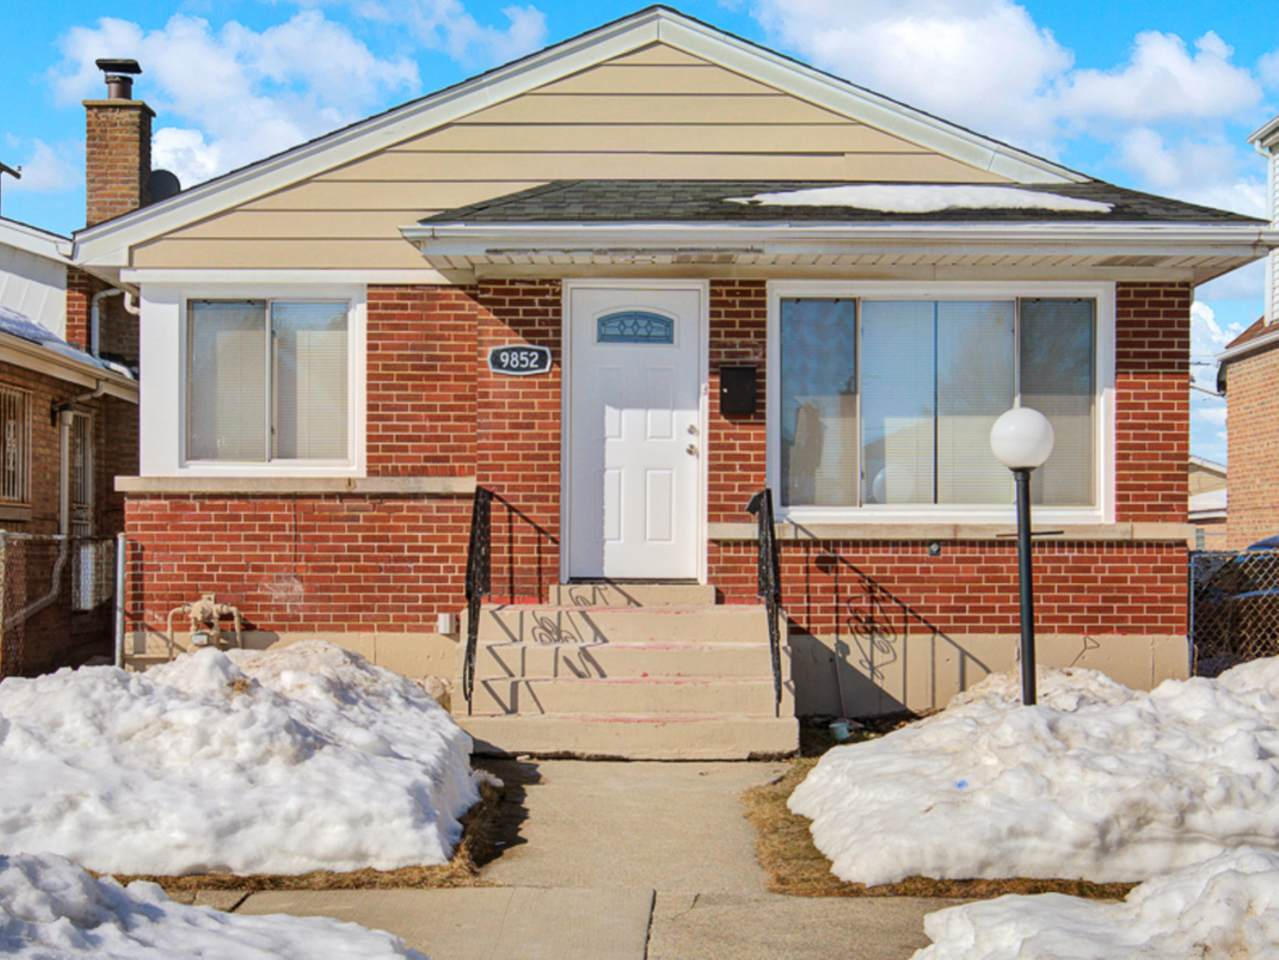 9852 Forest Avenue - Photo 1